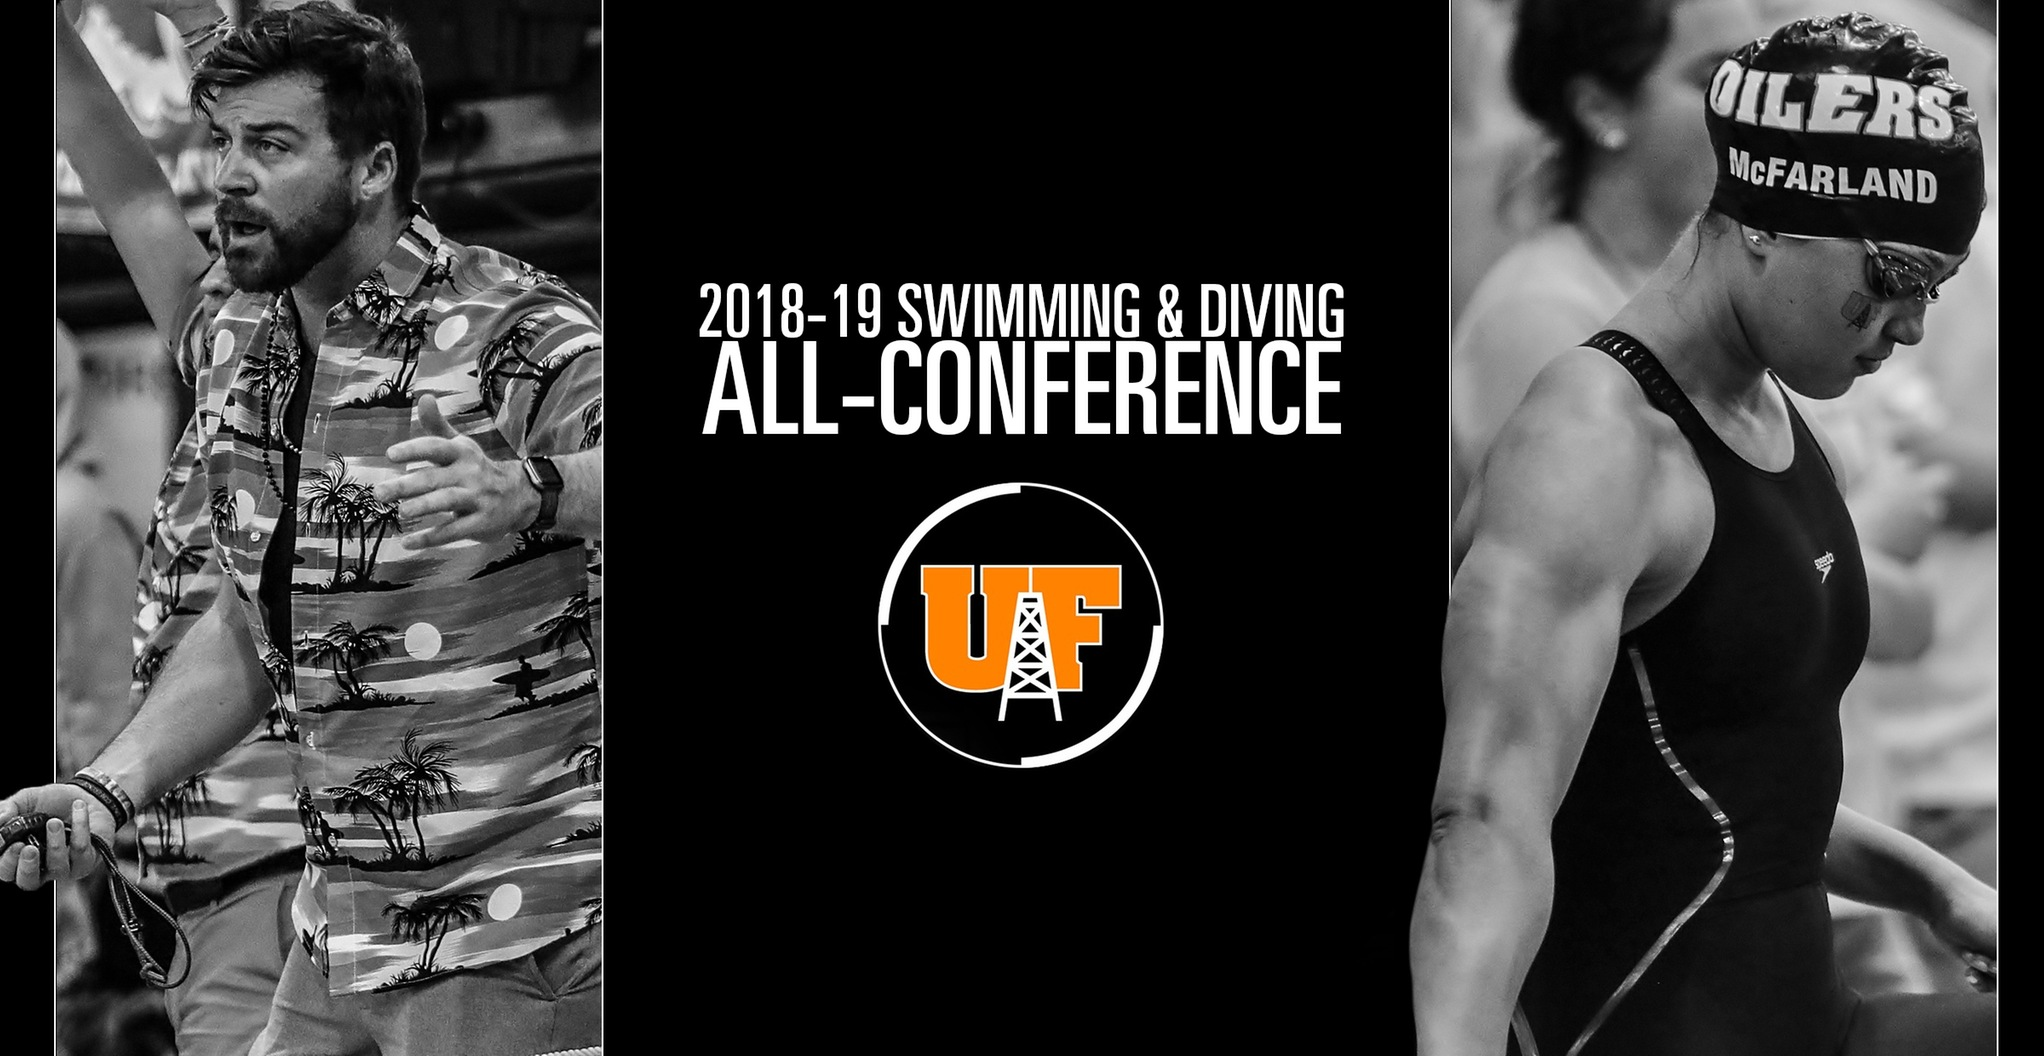 Oilers Earn 25 All-Conference Honors | McFarland is Freshman of the Year